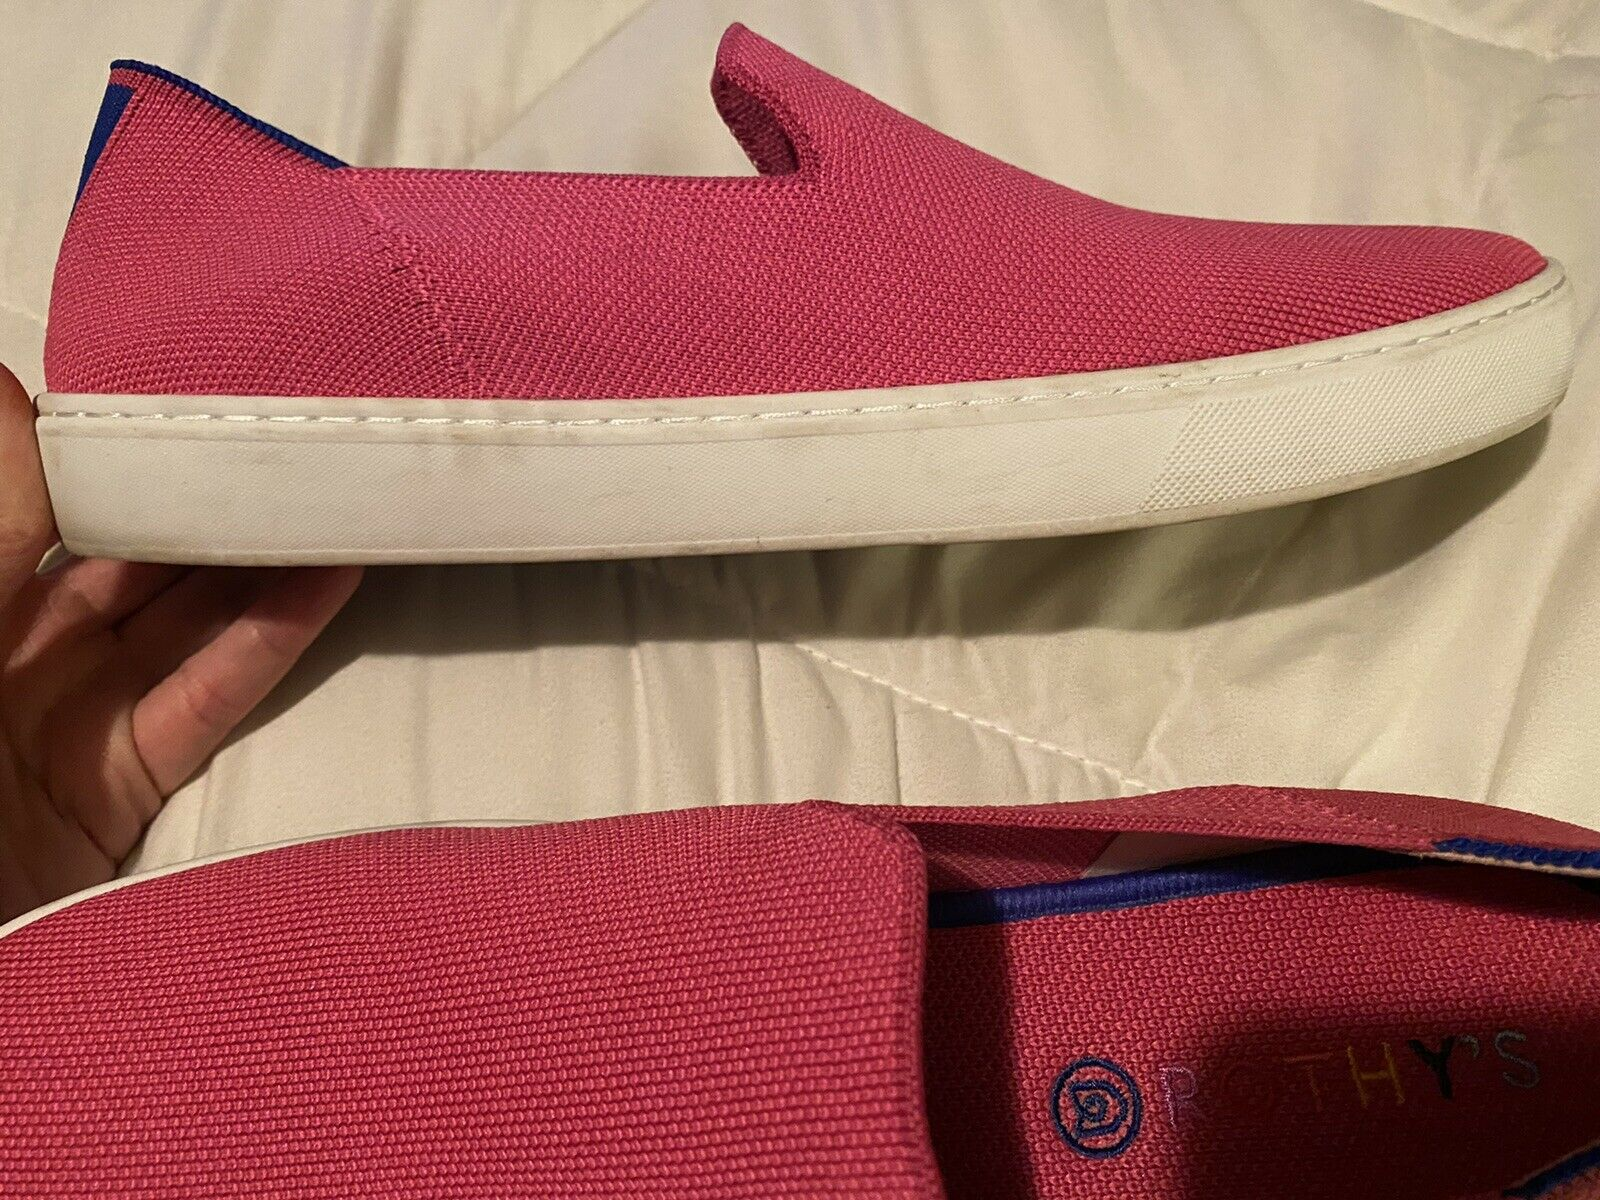 Rothys sneakers Bubblegum pink size 12.5 - image 4